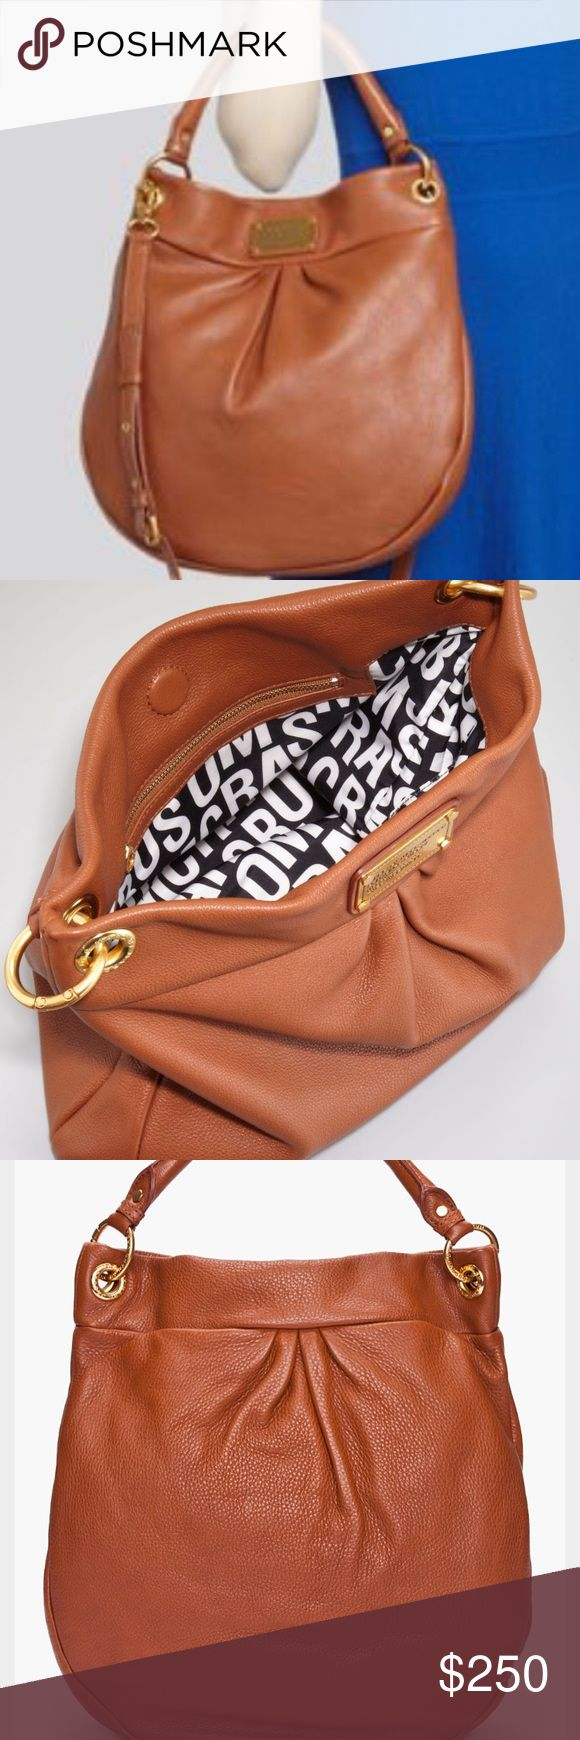 """Marc by Marc Jacobs Classic Q Hillier Hobo Bag Triple pleats. Soft, slouchy hobo. Maple tan. Rolled handle. (No shoulder strap). Like new condition on the outside. Some wear on grommets (pictured) and slight staining on inside. Magnetic snap closure. Interior zip, wall and cell phone pockets. Leather. 14""""W x 15""""H x 3 ½""""D. ***Jewelry and Accessories by Stella & Dot- See Bio.*** 👗Fab Ab's Closet; Re-styled Resale👗 🎀15% OFF 2+ ITEM BUNDLE🎀 😊PLEASE USE OFFER BUTTON ❌NO PP, TRADES, HOLDS❌…"""